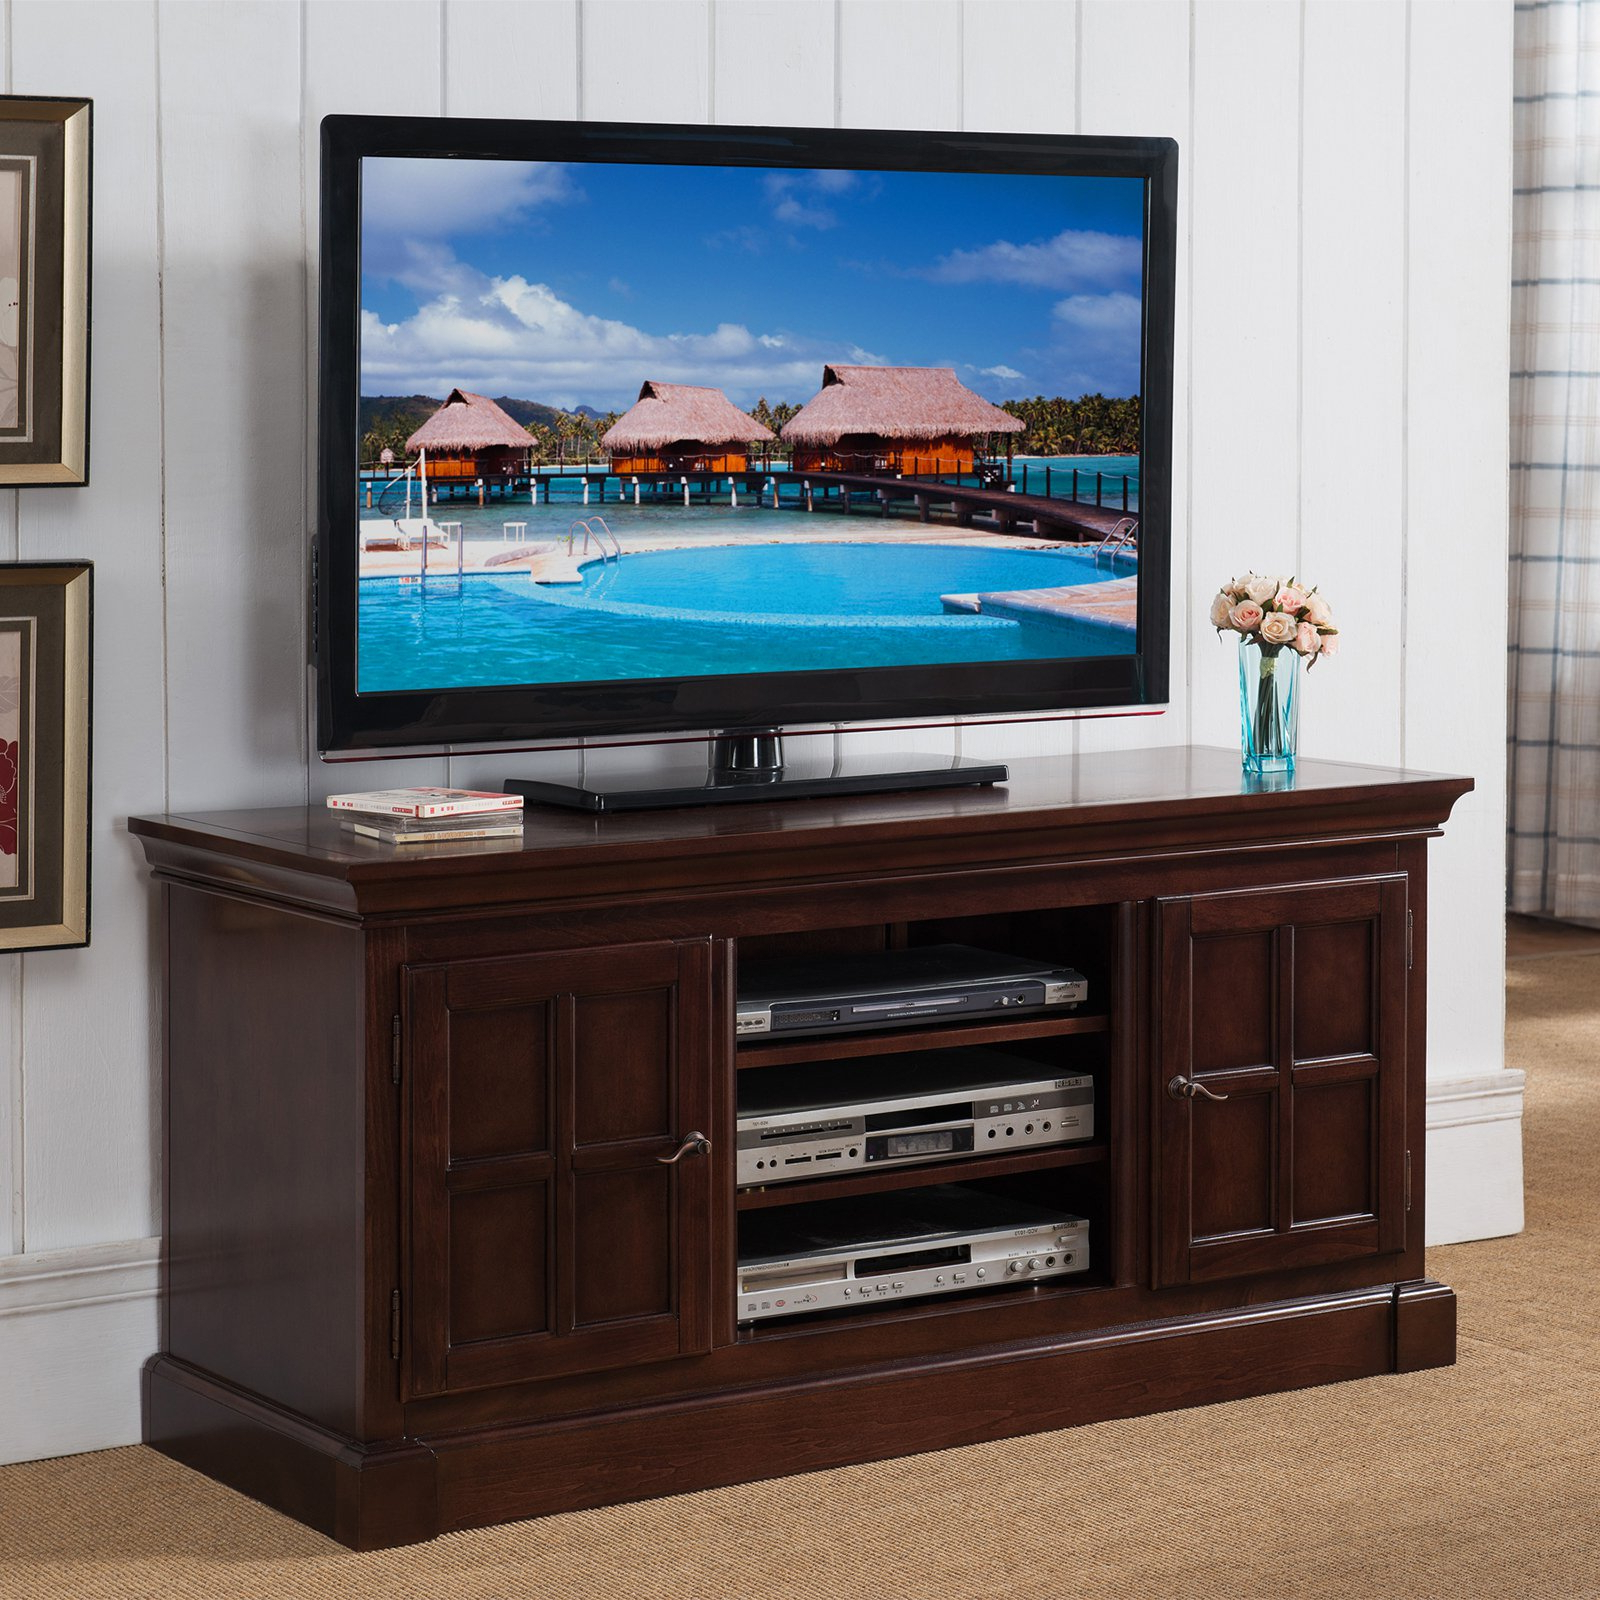 Leick Laurent 50 In. Tv Stand | Hayneedle Pertaining To Laurent 50 Inch Tv Stands (Gallery 15 of 20)